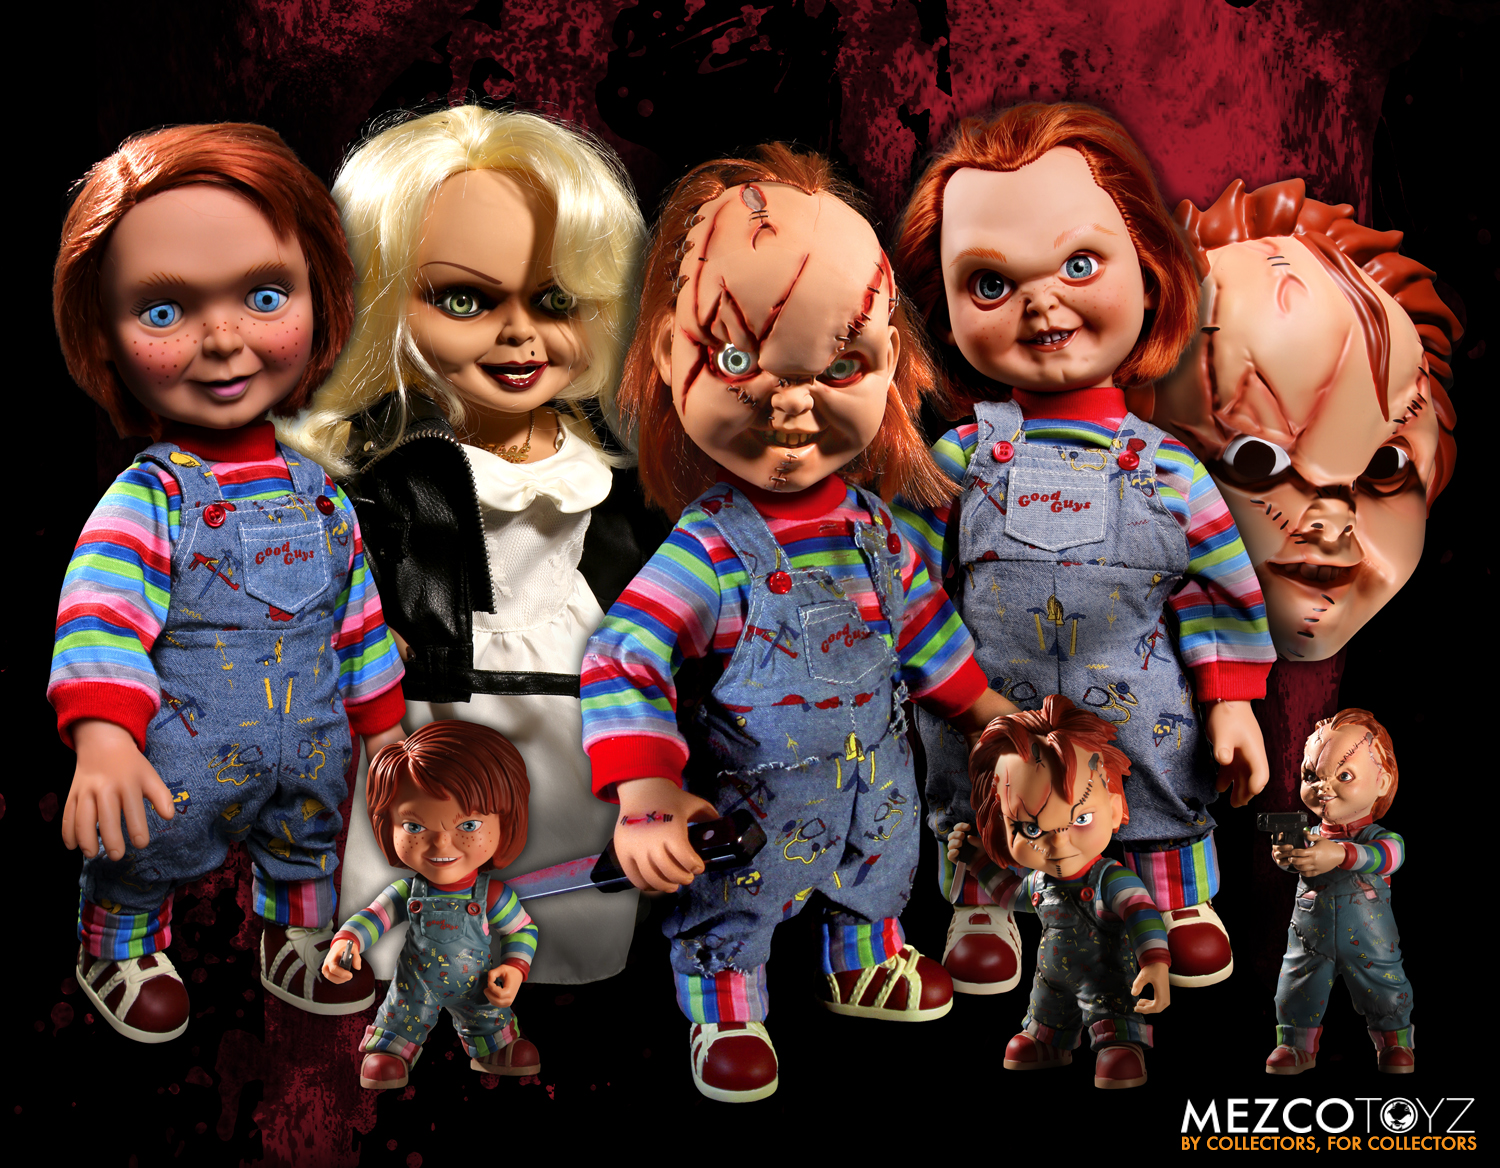 The Creative Mind Behind The Killer Doll Don Mancini Interview